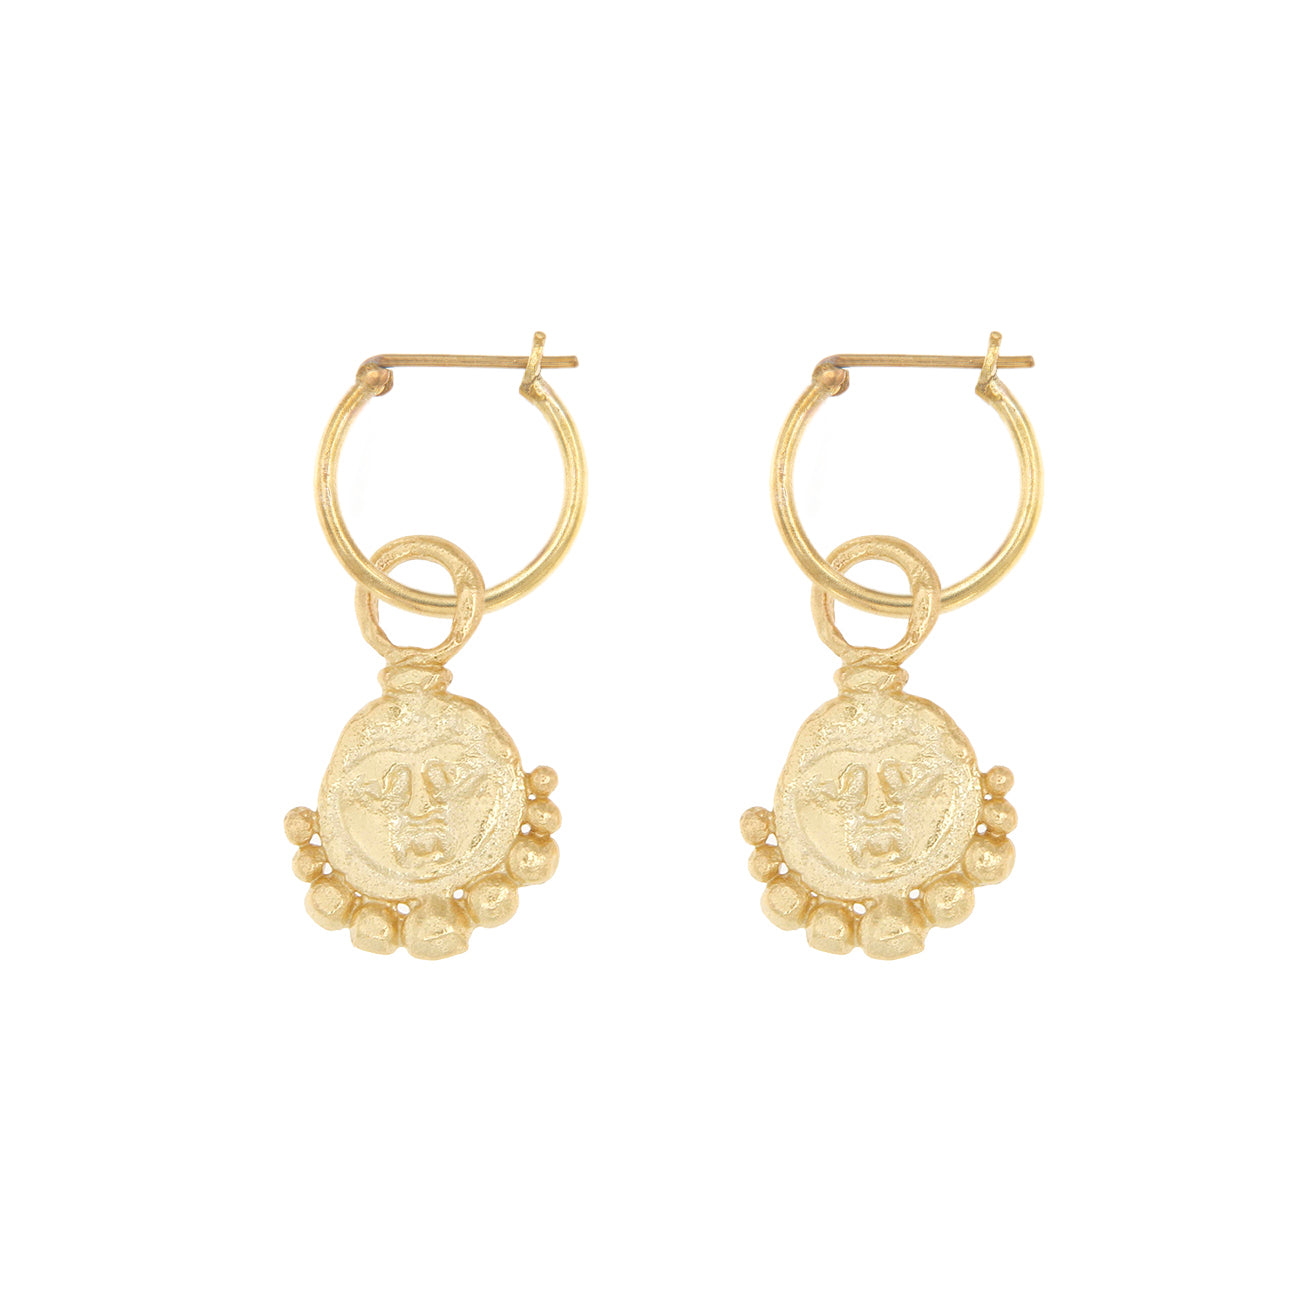 Gorgoneion Lion Hoops - 18K Gold Plated